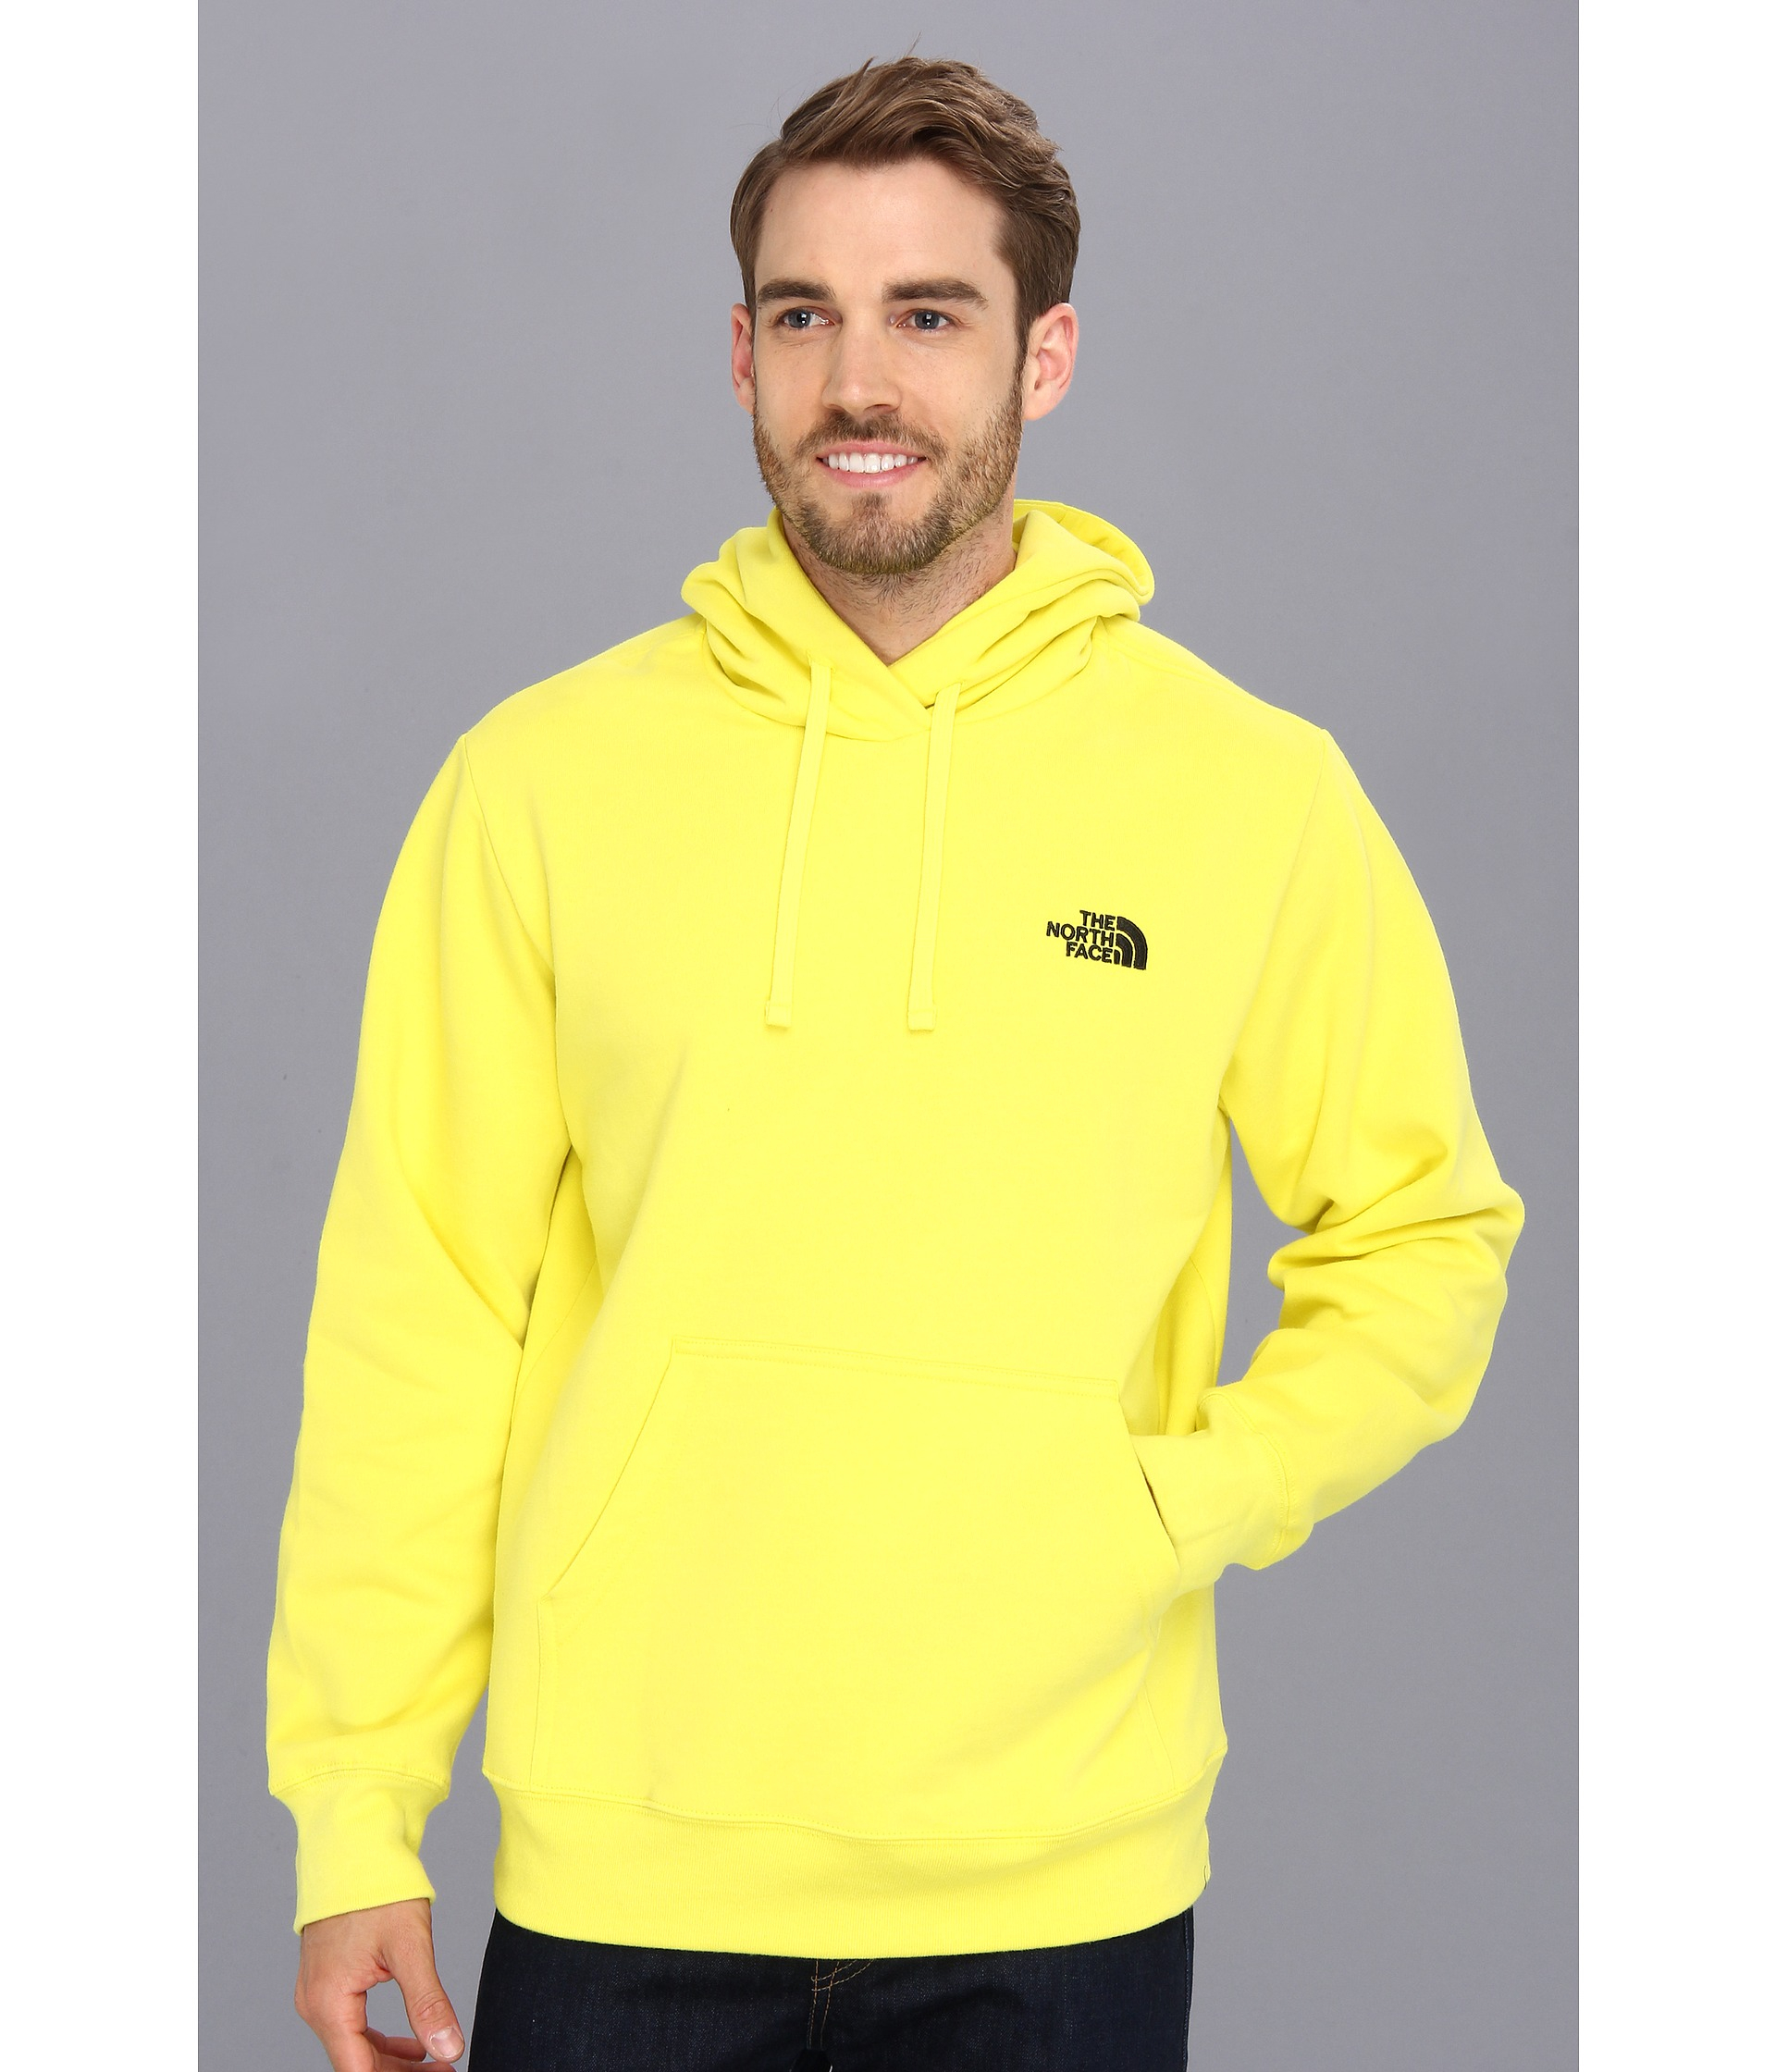 Mens Yellow Hoodie - Trendy Clothes